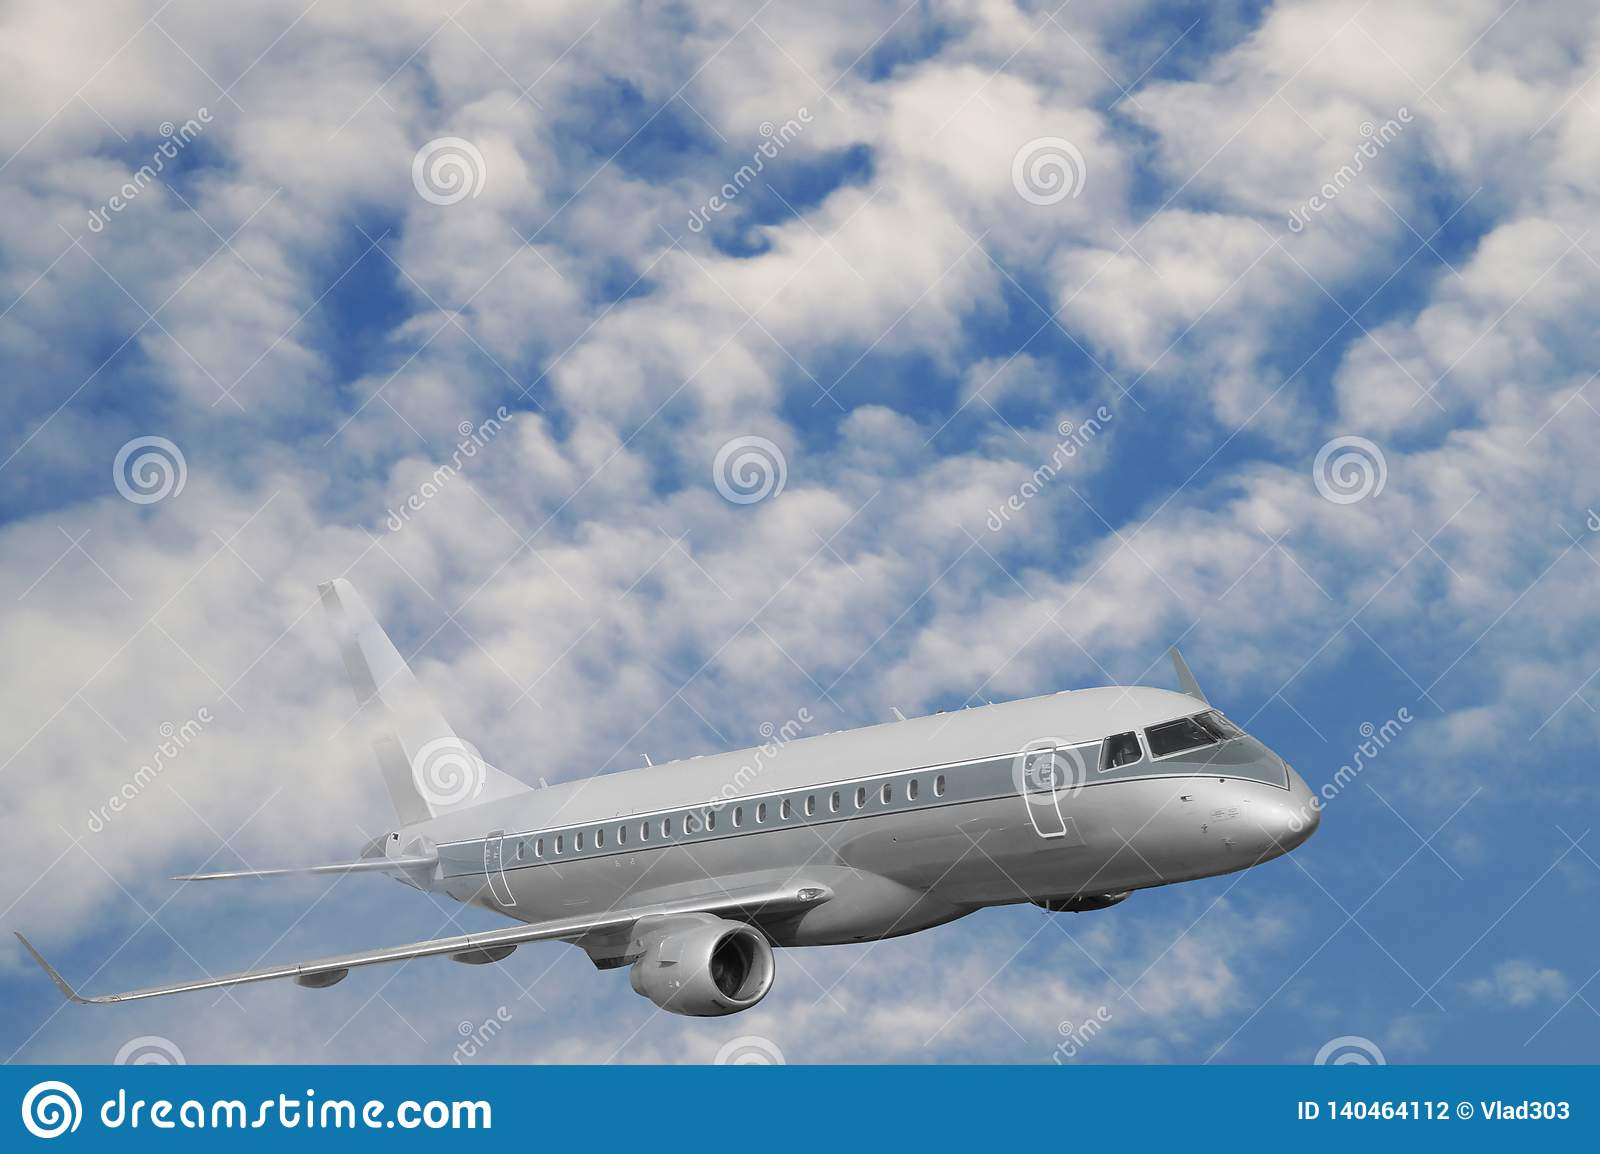 Travel by plane. The passenger plane during the flight rises above the clouds level